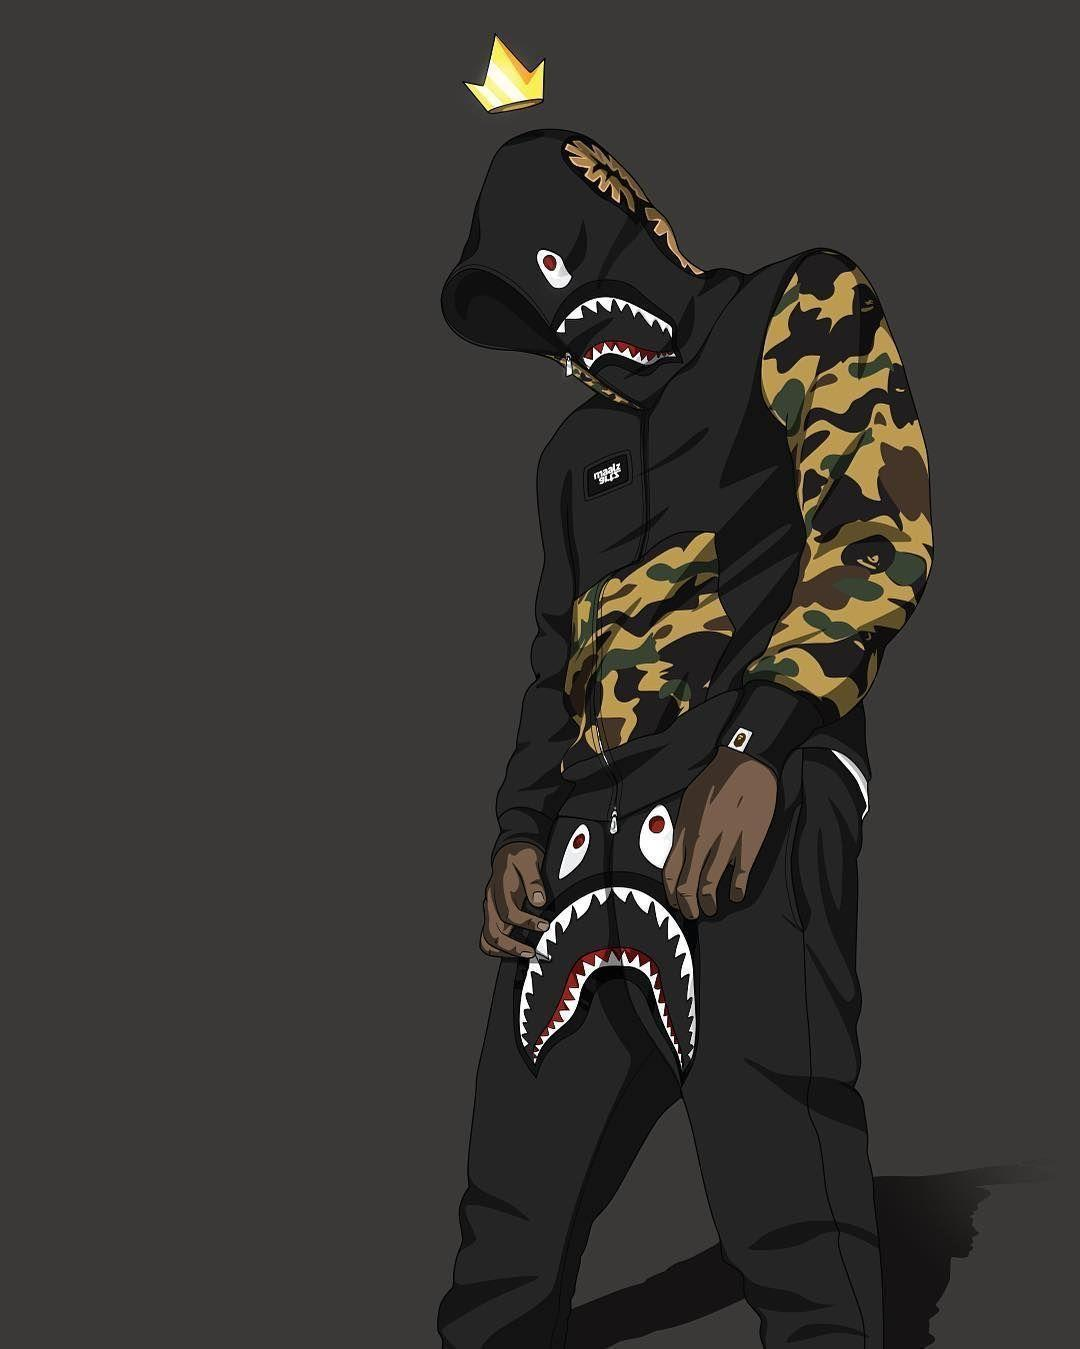 1000+ images about Supreme,Bape on Pinterest | iPhone wallpapers ...